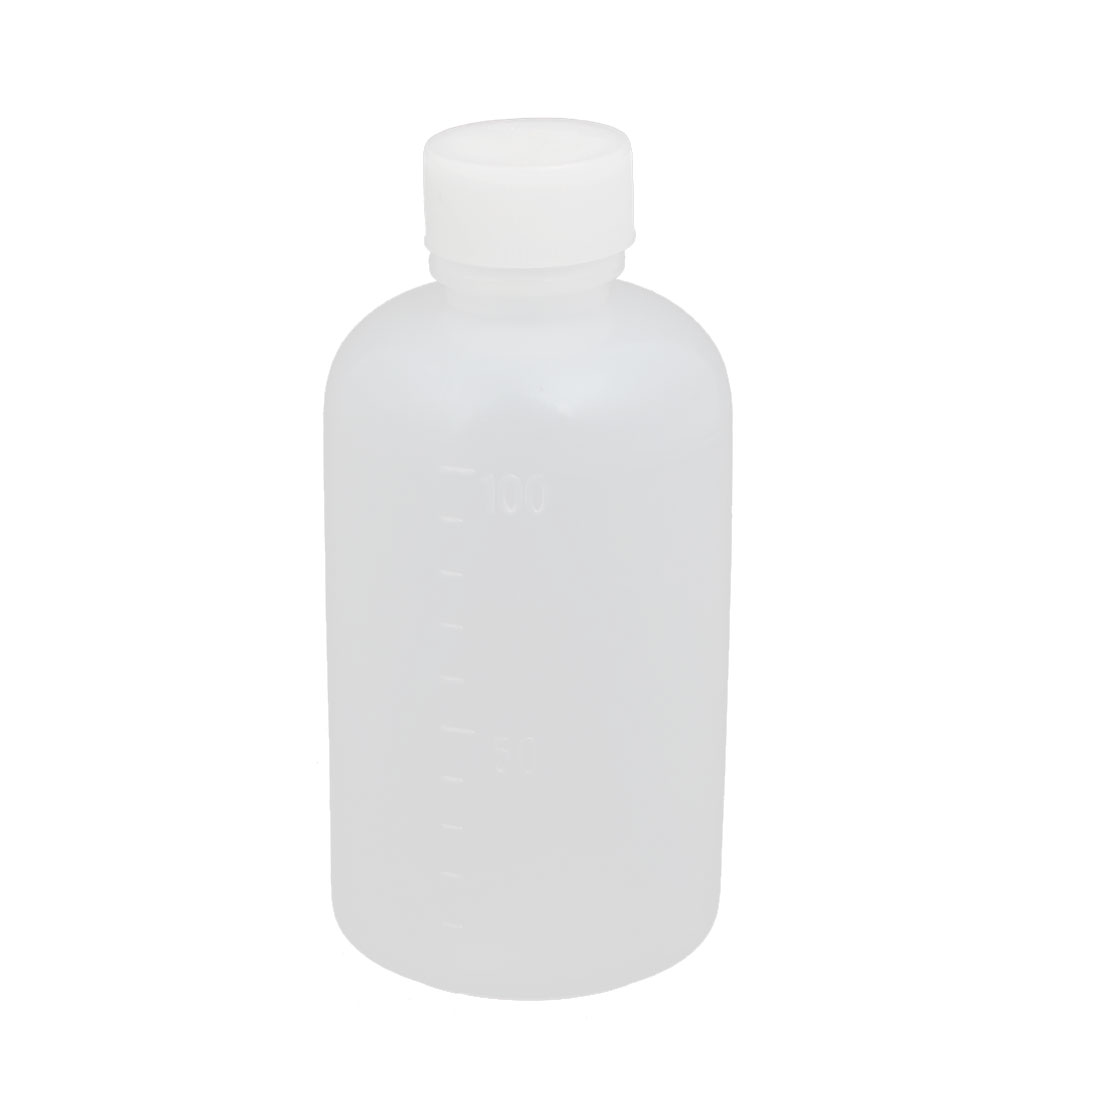 100ml 13mm Diameter PE Plastic Round Narrow Mouth Bottle Clear